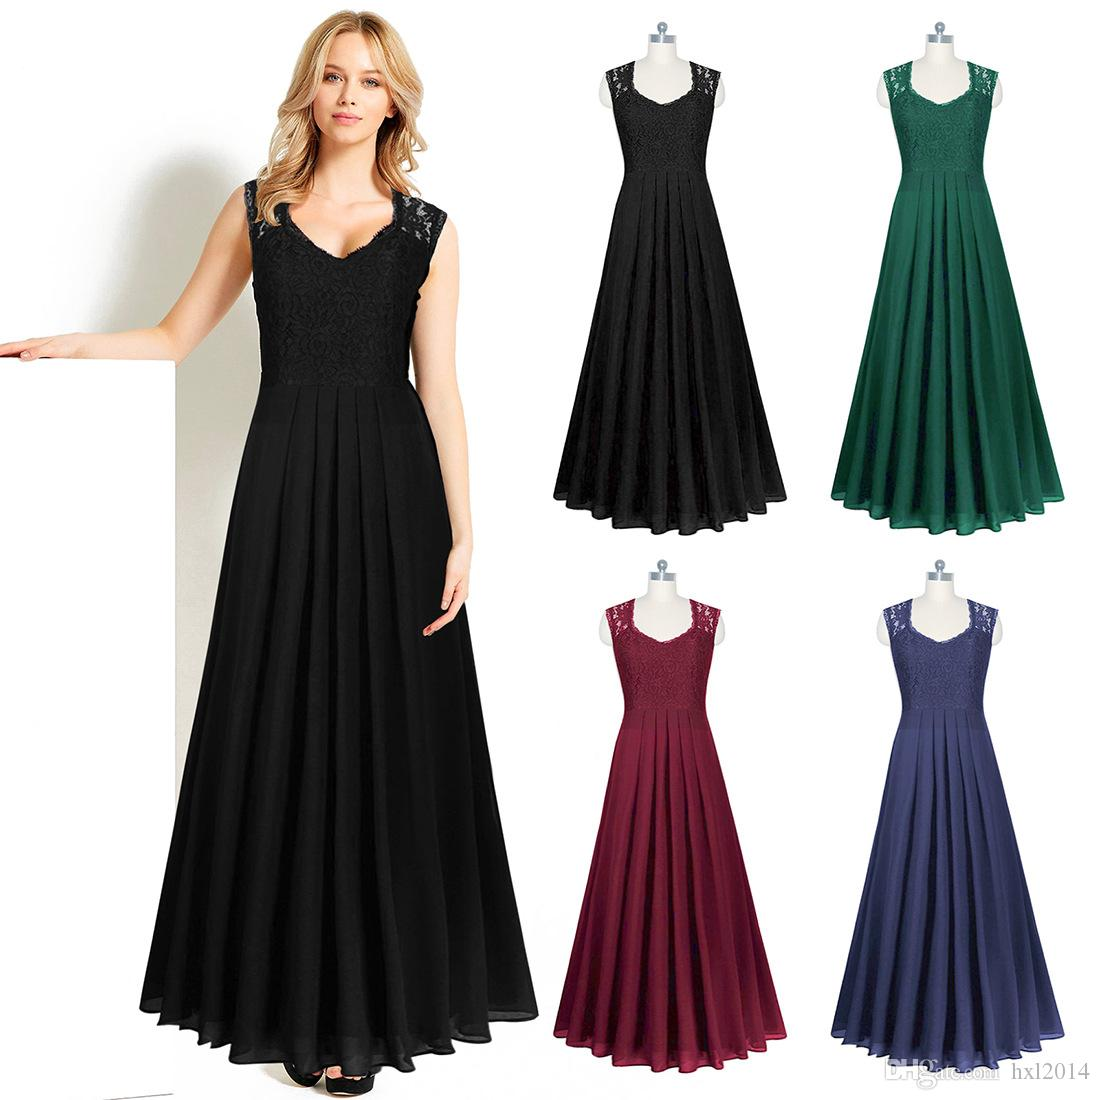 2f5c5bd05aa 2019 Women S Clothing 2019 Summer Fashion Vintage Plus Size Cocktail Prom Evening  Party Dresses Beach Dress Ball Gown Women Clothes Sundress From Hxl2014